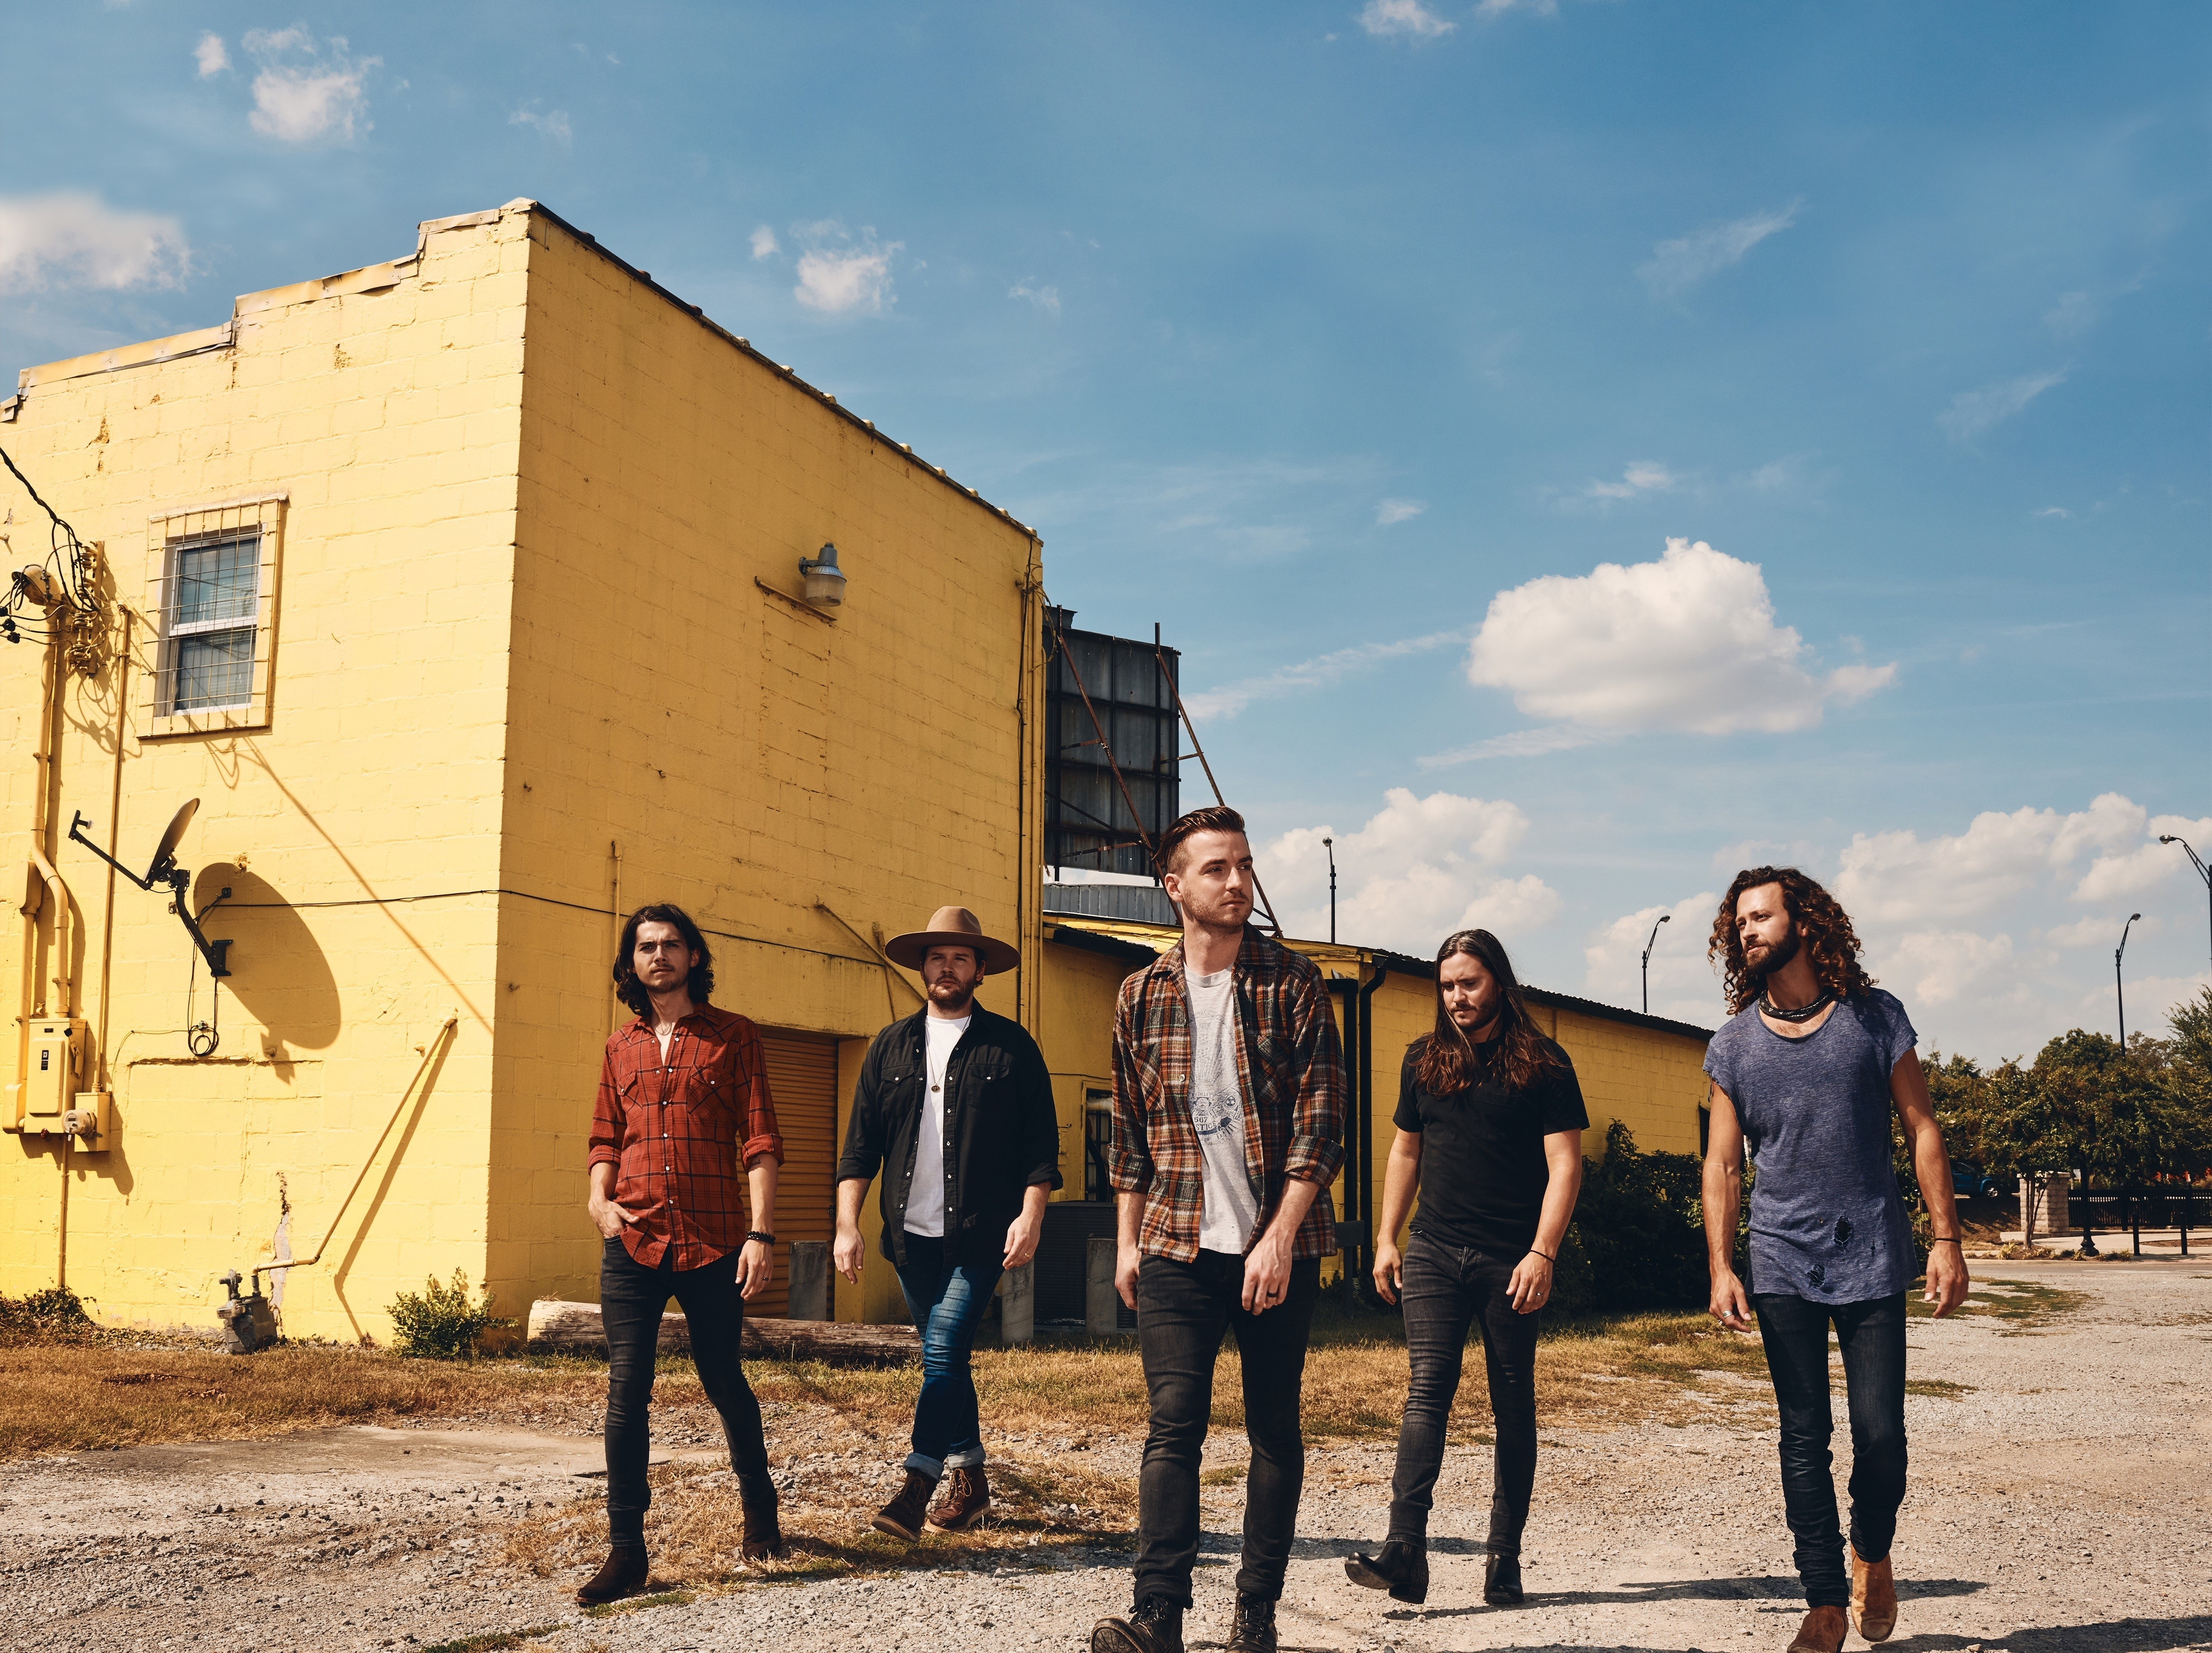 DOUBLE-PLATINUM GROUP LANCO DROPS TWO NEW TRACKS TODAY